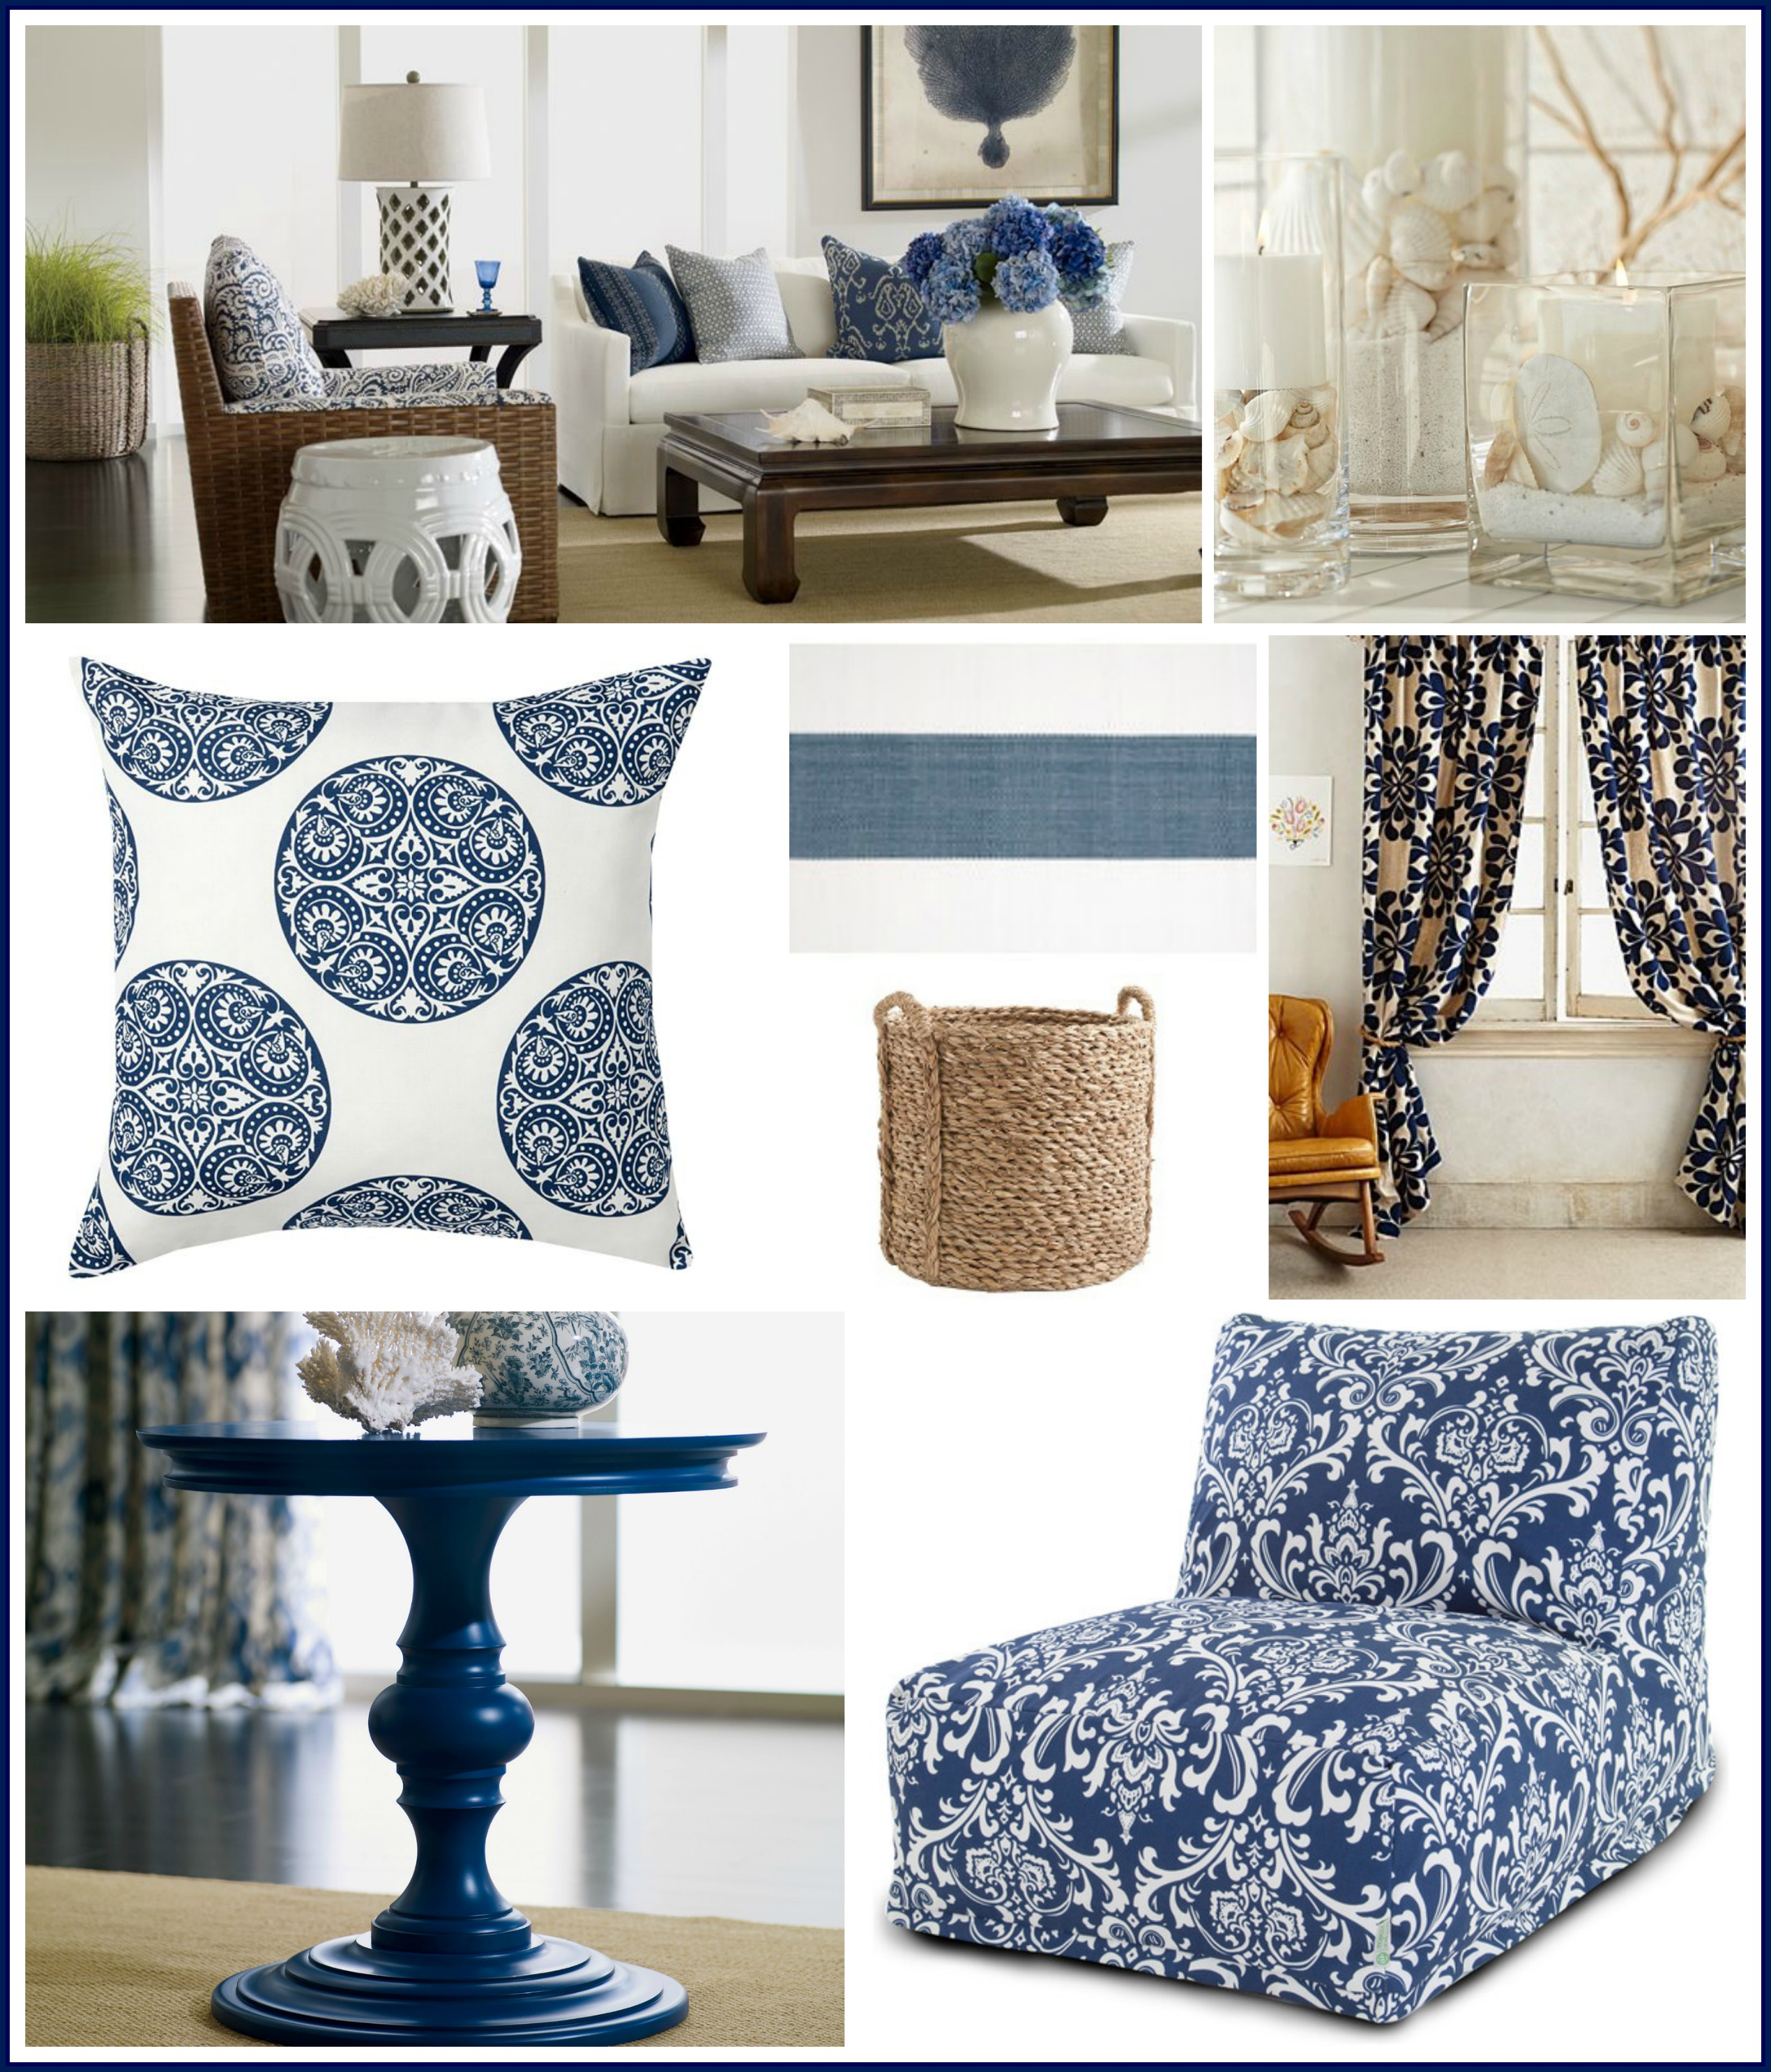 3 Home Decor Trends For Spring Brittany Stager: PJ & Company Staging And